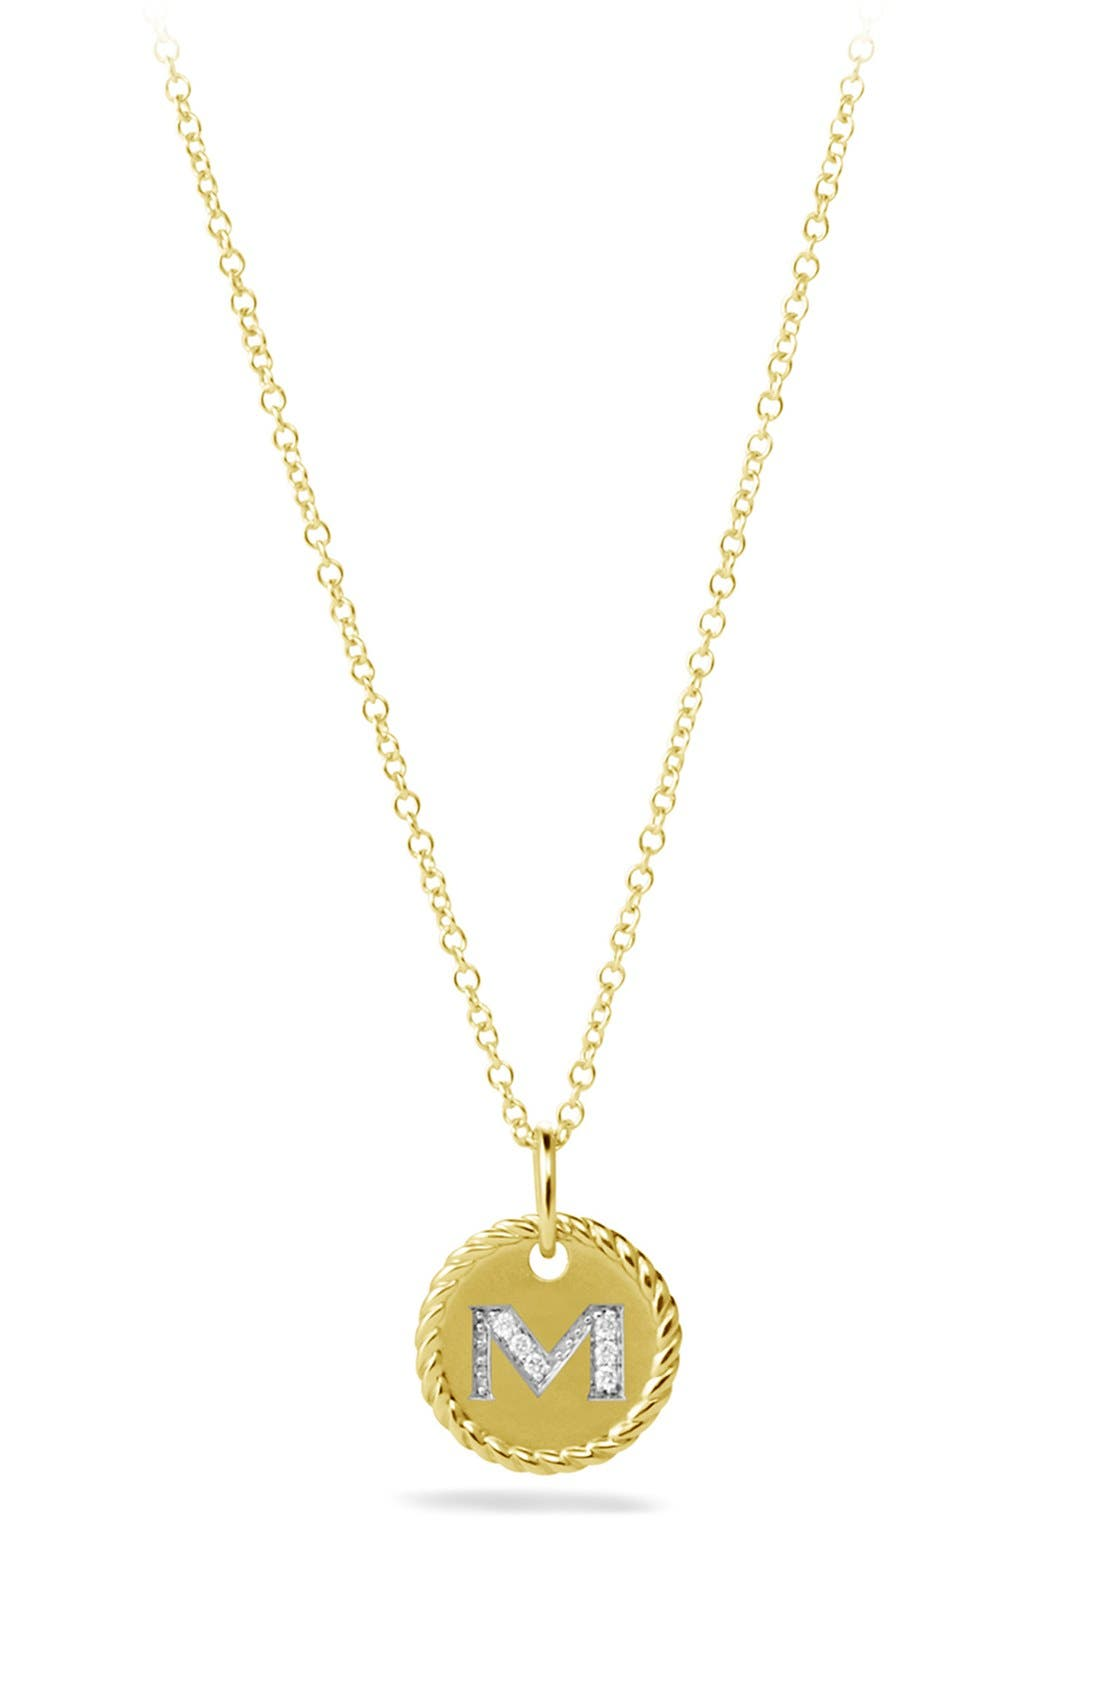 Alternate Image 1 Selected - David Yurman 'Cable Collectibles' Initial Pendant with Diamonds in Gold on Chain